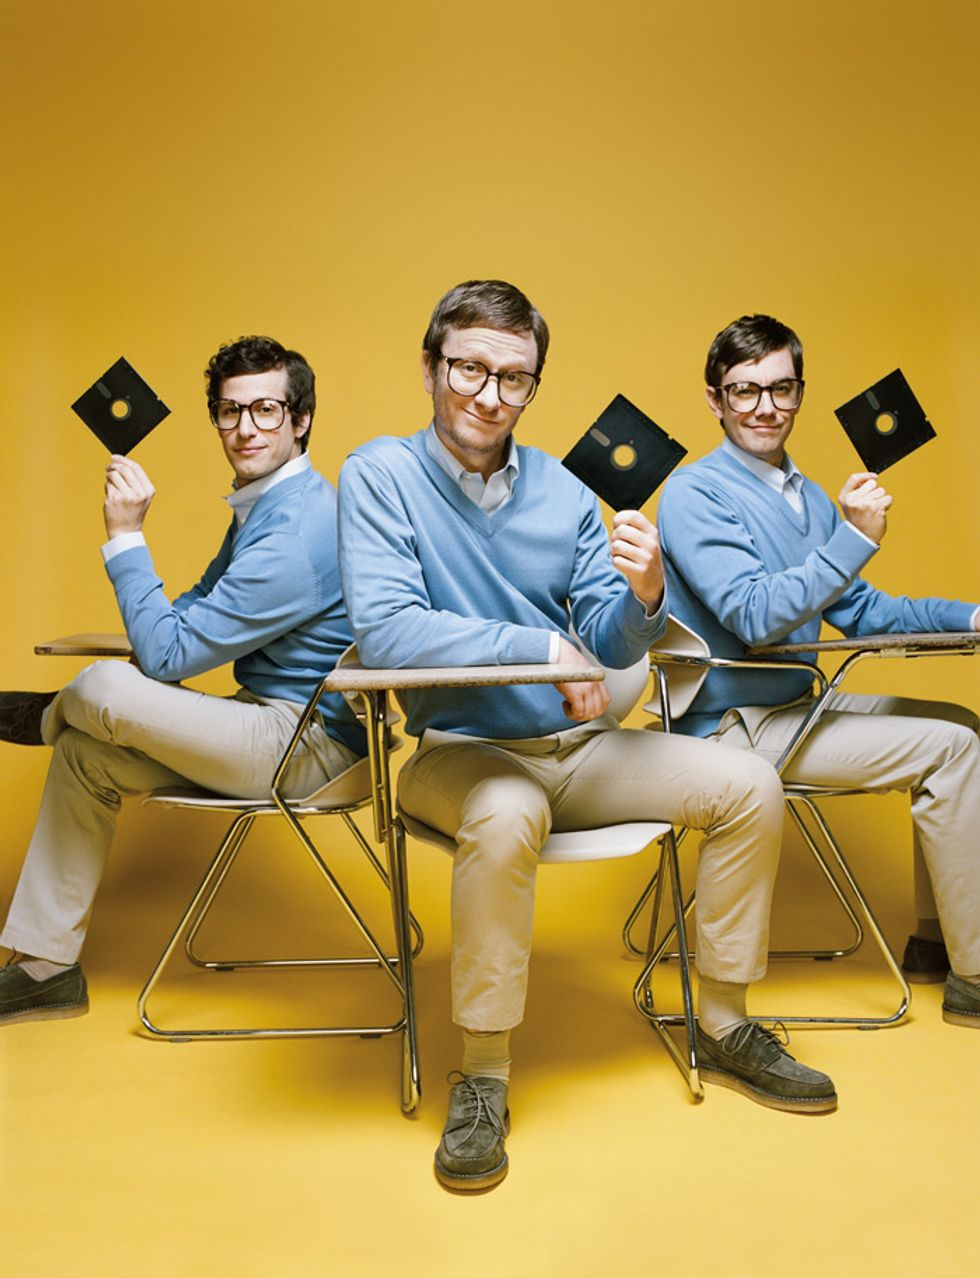 The Lonely Island Guys Prove Once Again Why They're the Internet's Biggest Stars.